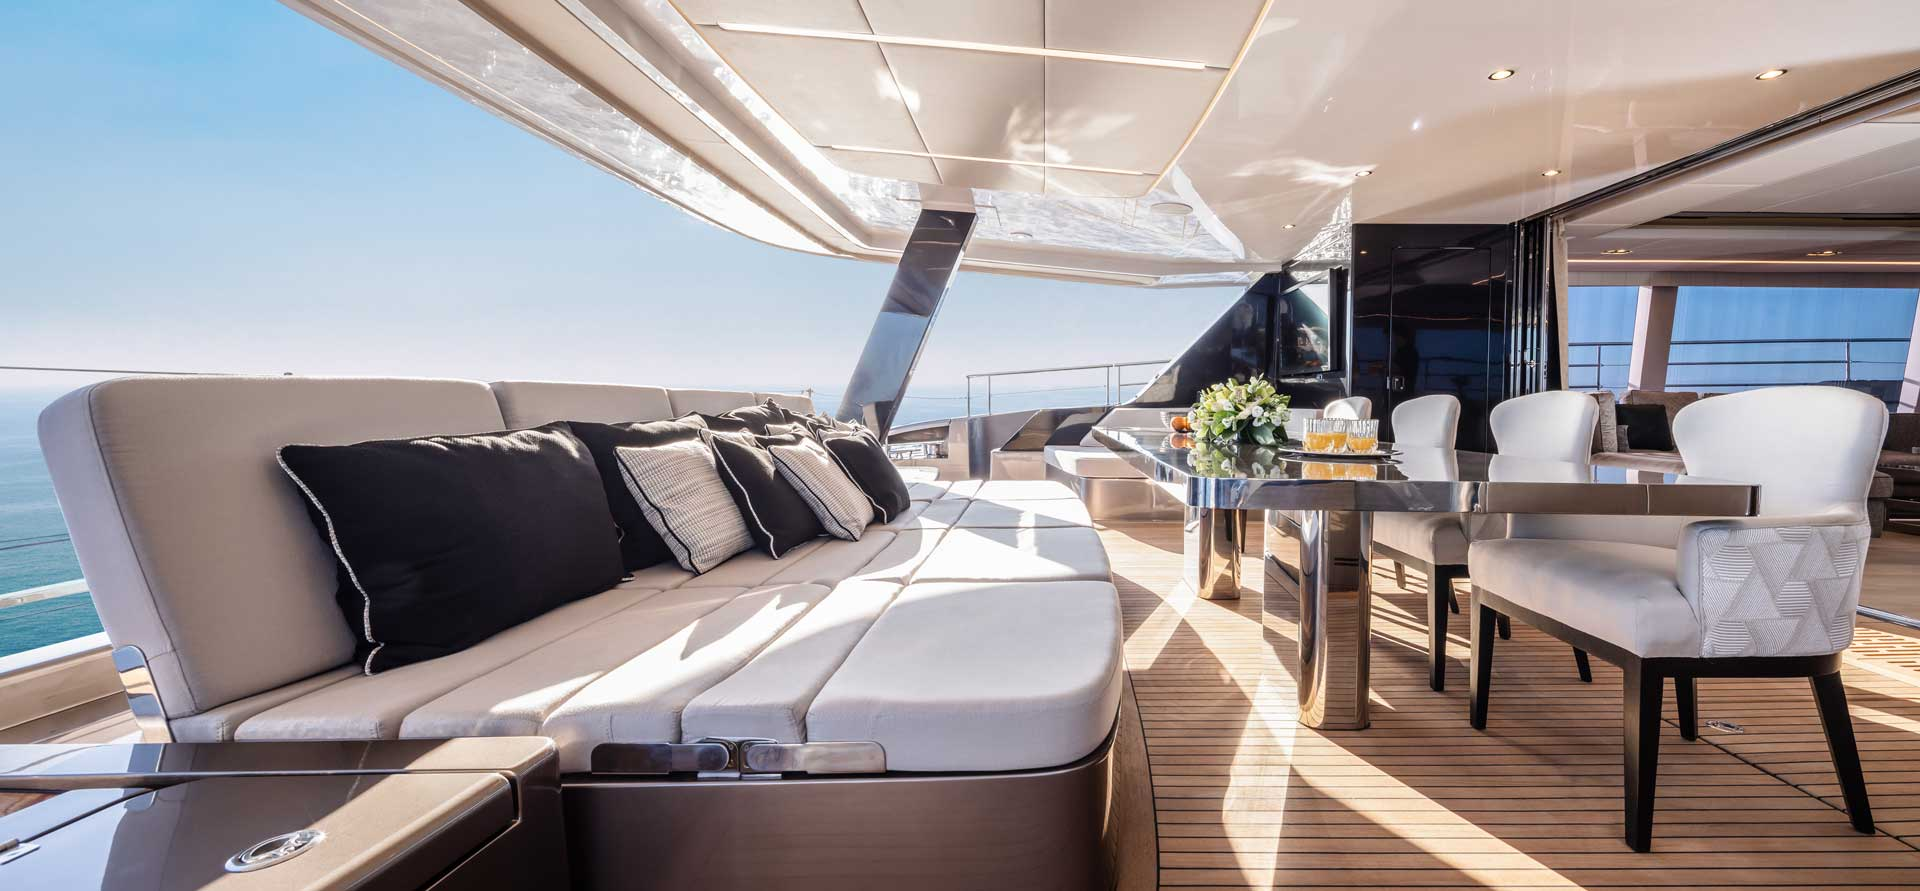 Ample aft cockpit of the 80 Sunreef Power Eco with the outdoor relaxation area with seating along with a wet bar.